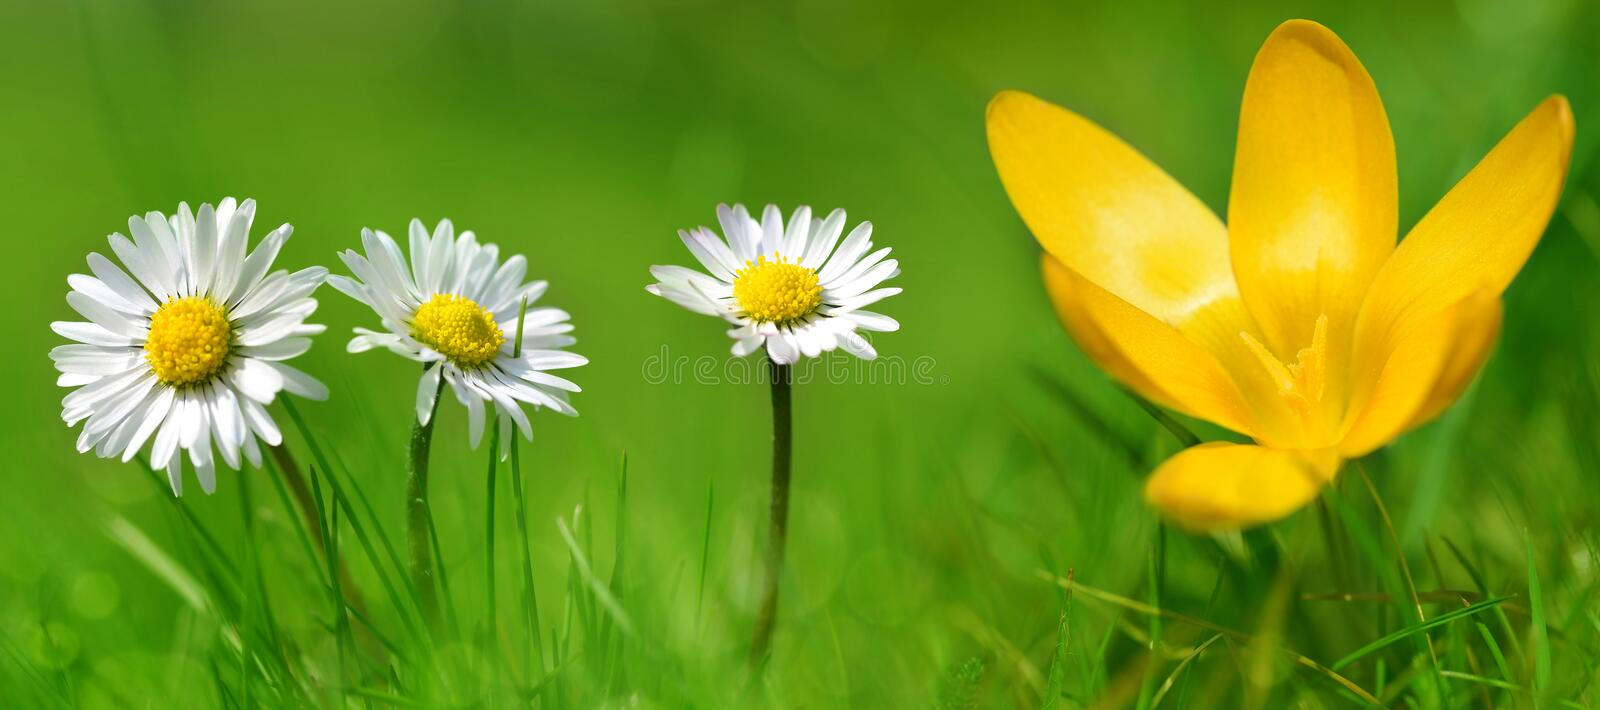 Daisy with crocus flower in grass. stock image